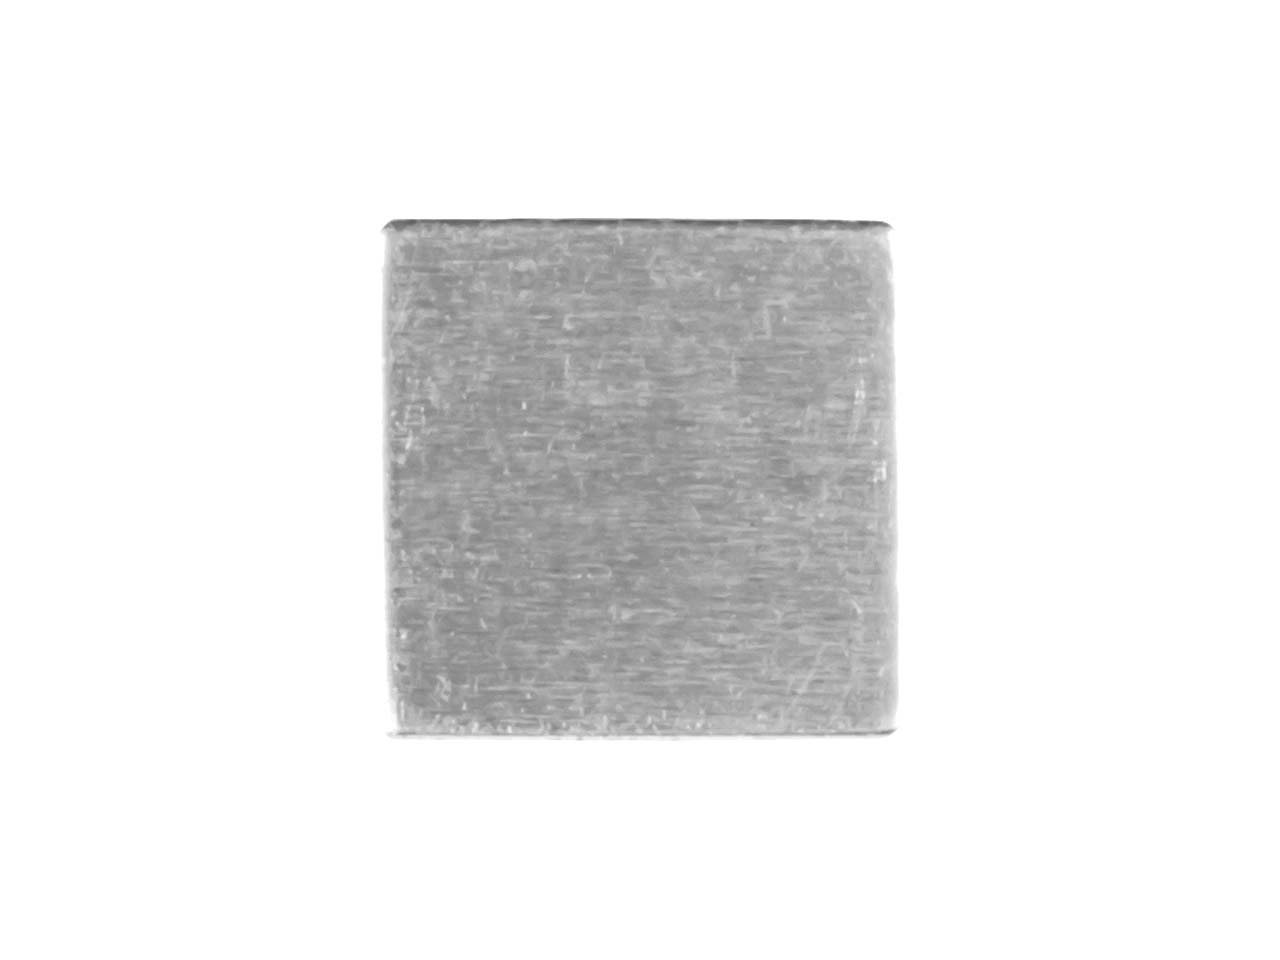 Impressart Aluminium Square 13mm   Stamping Blank Pack of 20